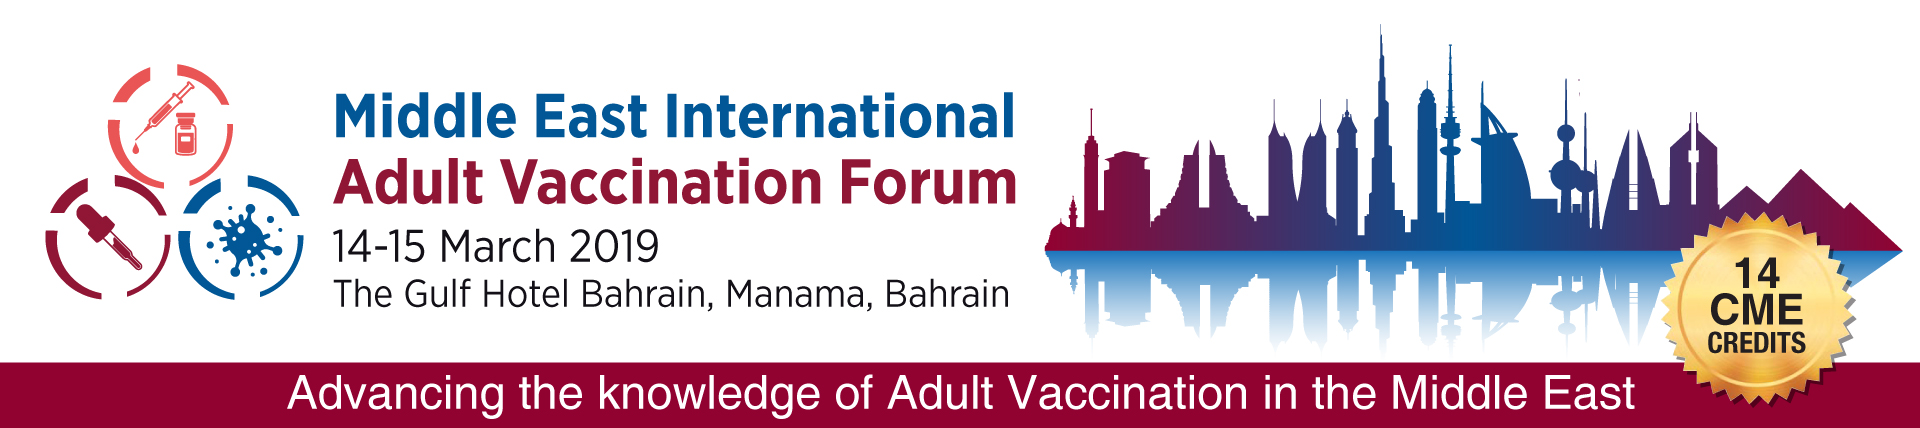 Adult-Vaccination_Banner-Venue